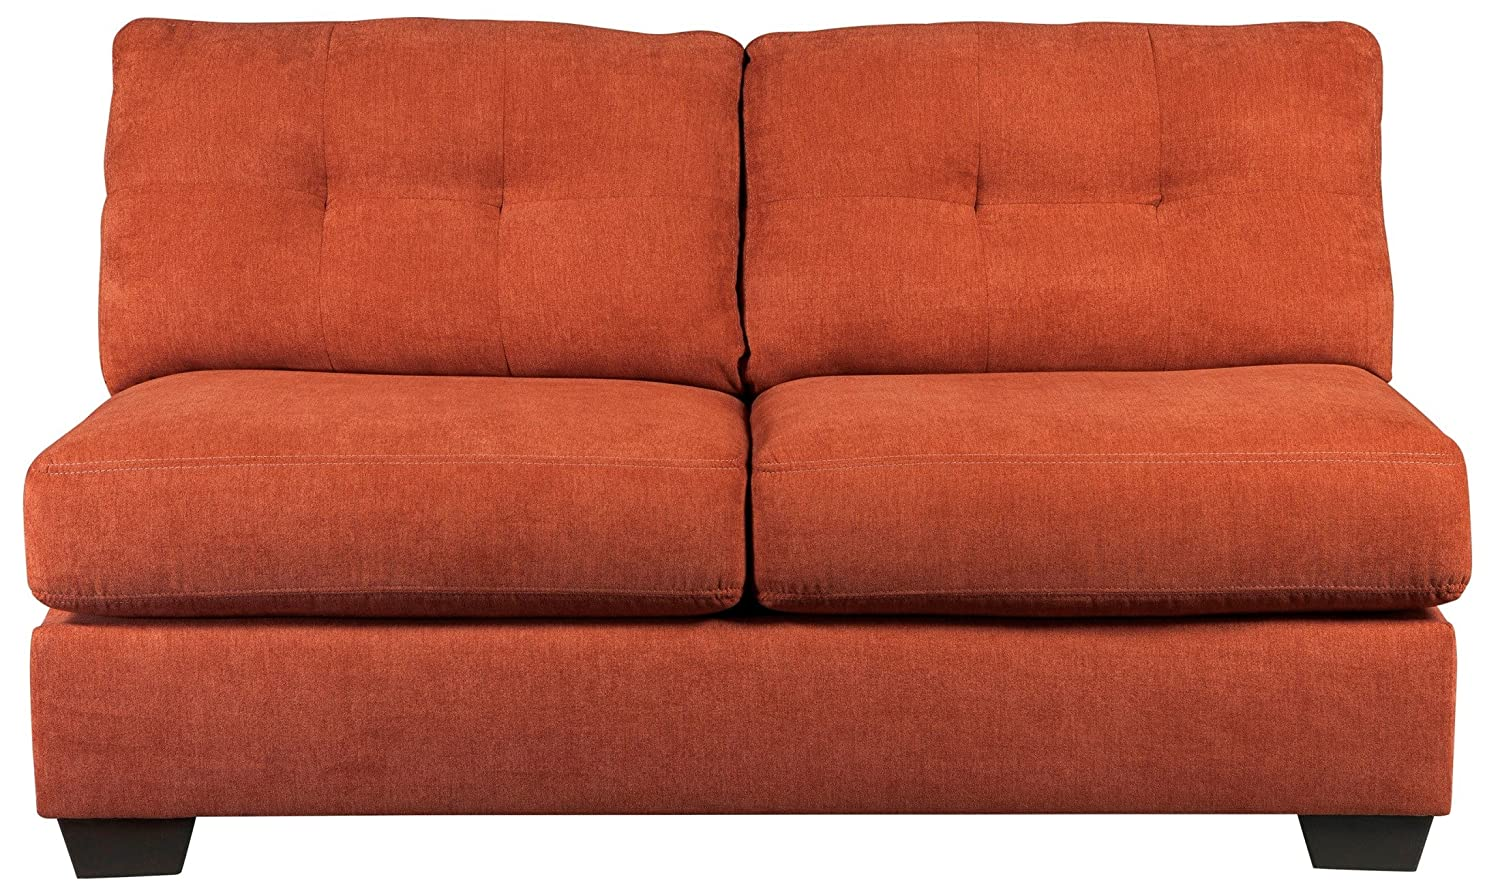 Ashley Delta City Armless Loveseat in Rust